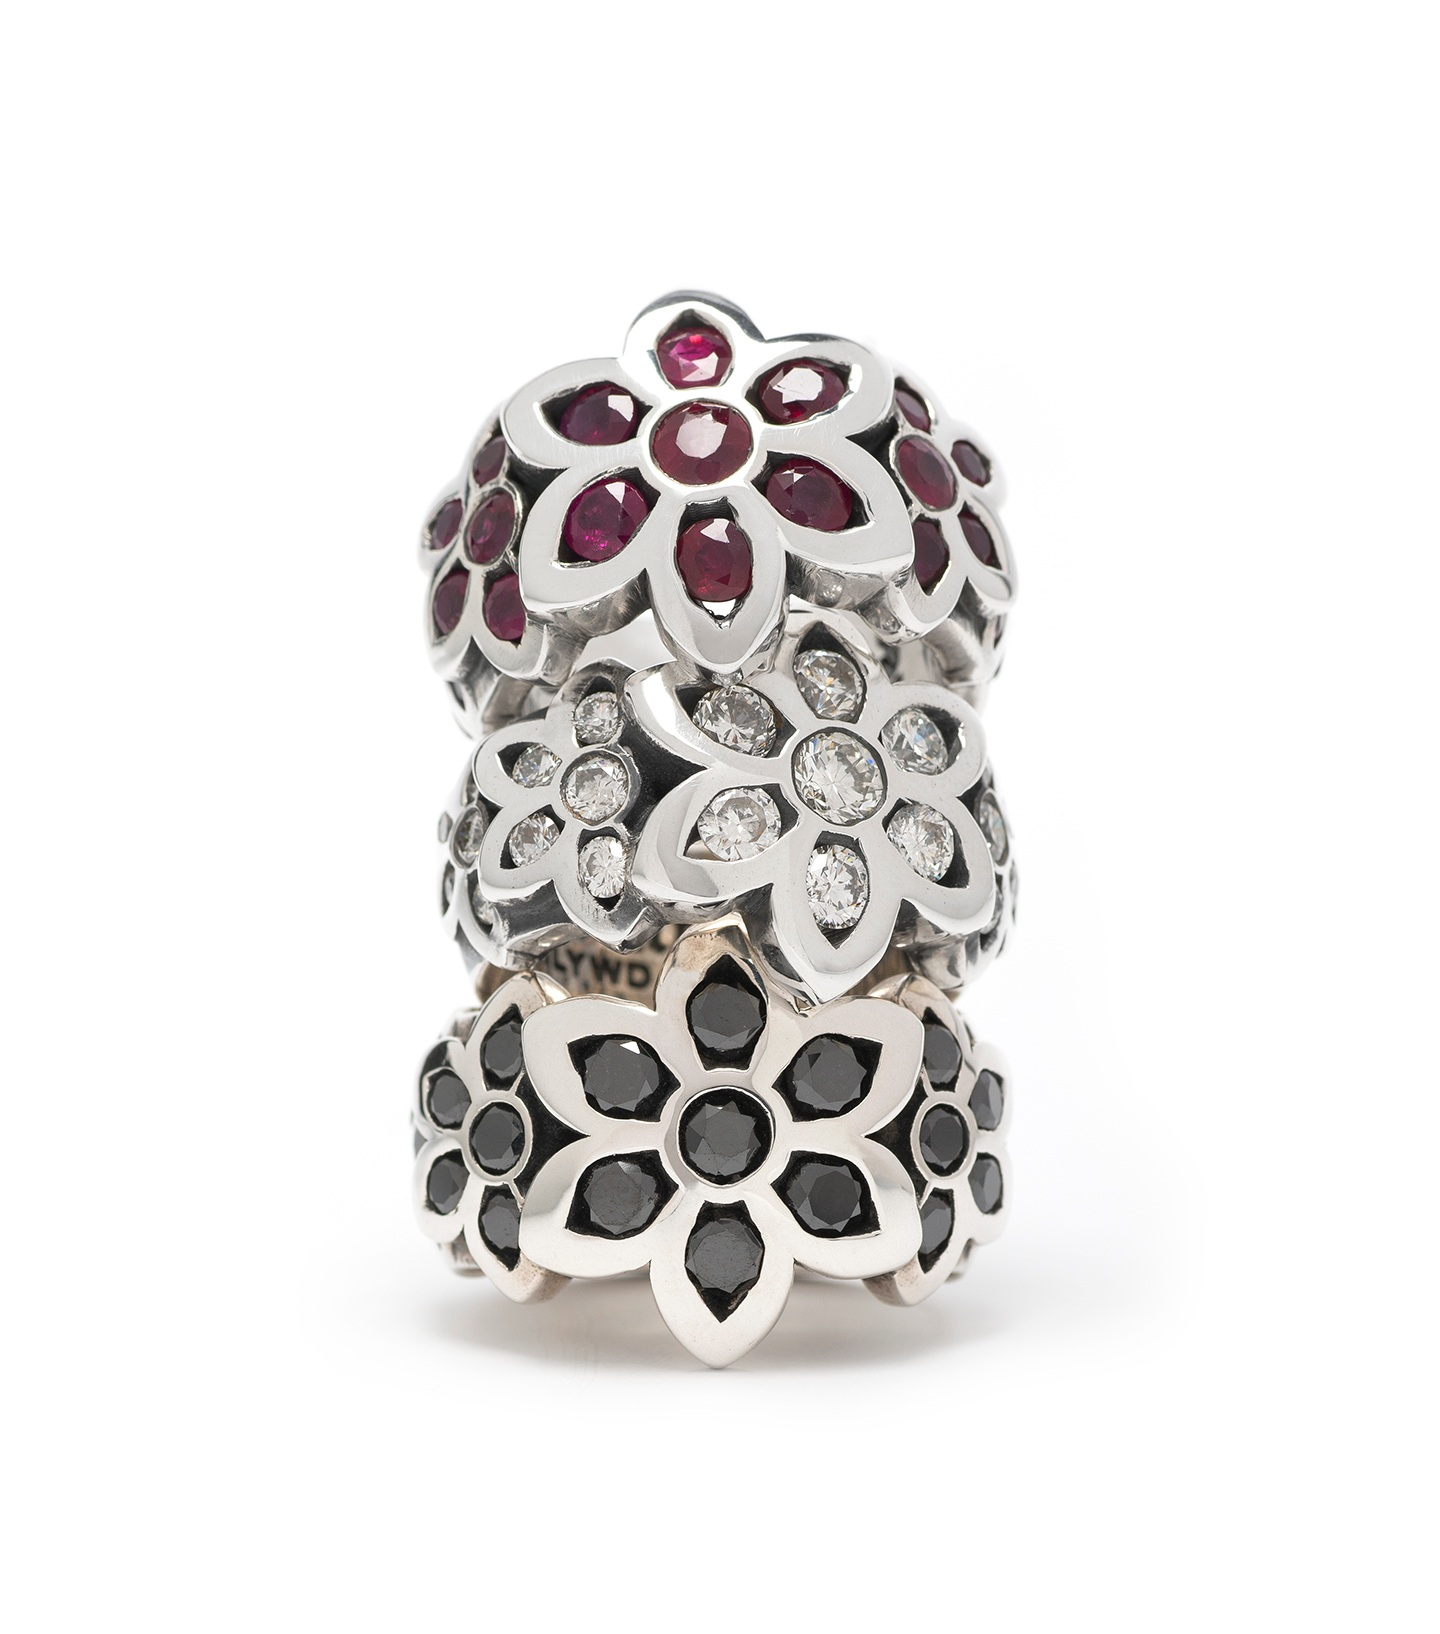 _Ring_Model18_Stack_Ruby_Diamond_Silver_GAH0205_72dpi.jpg